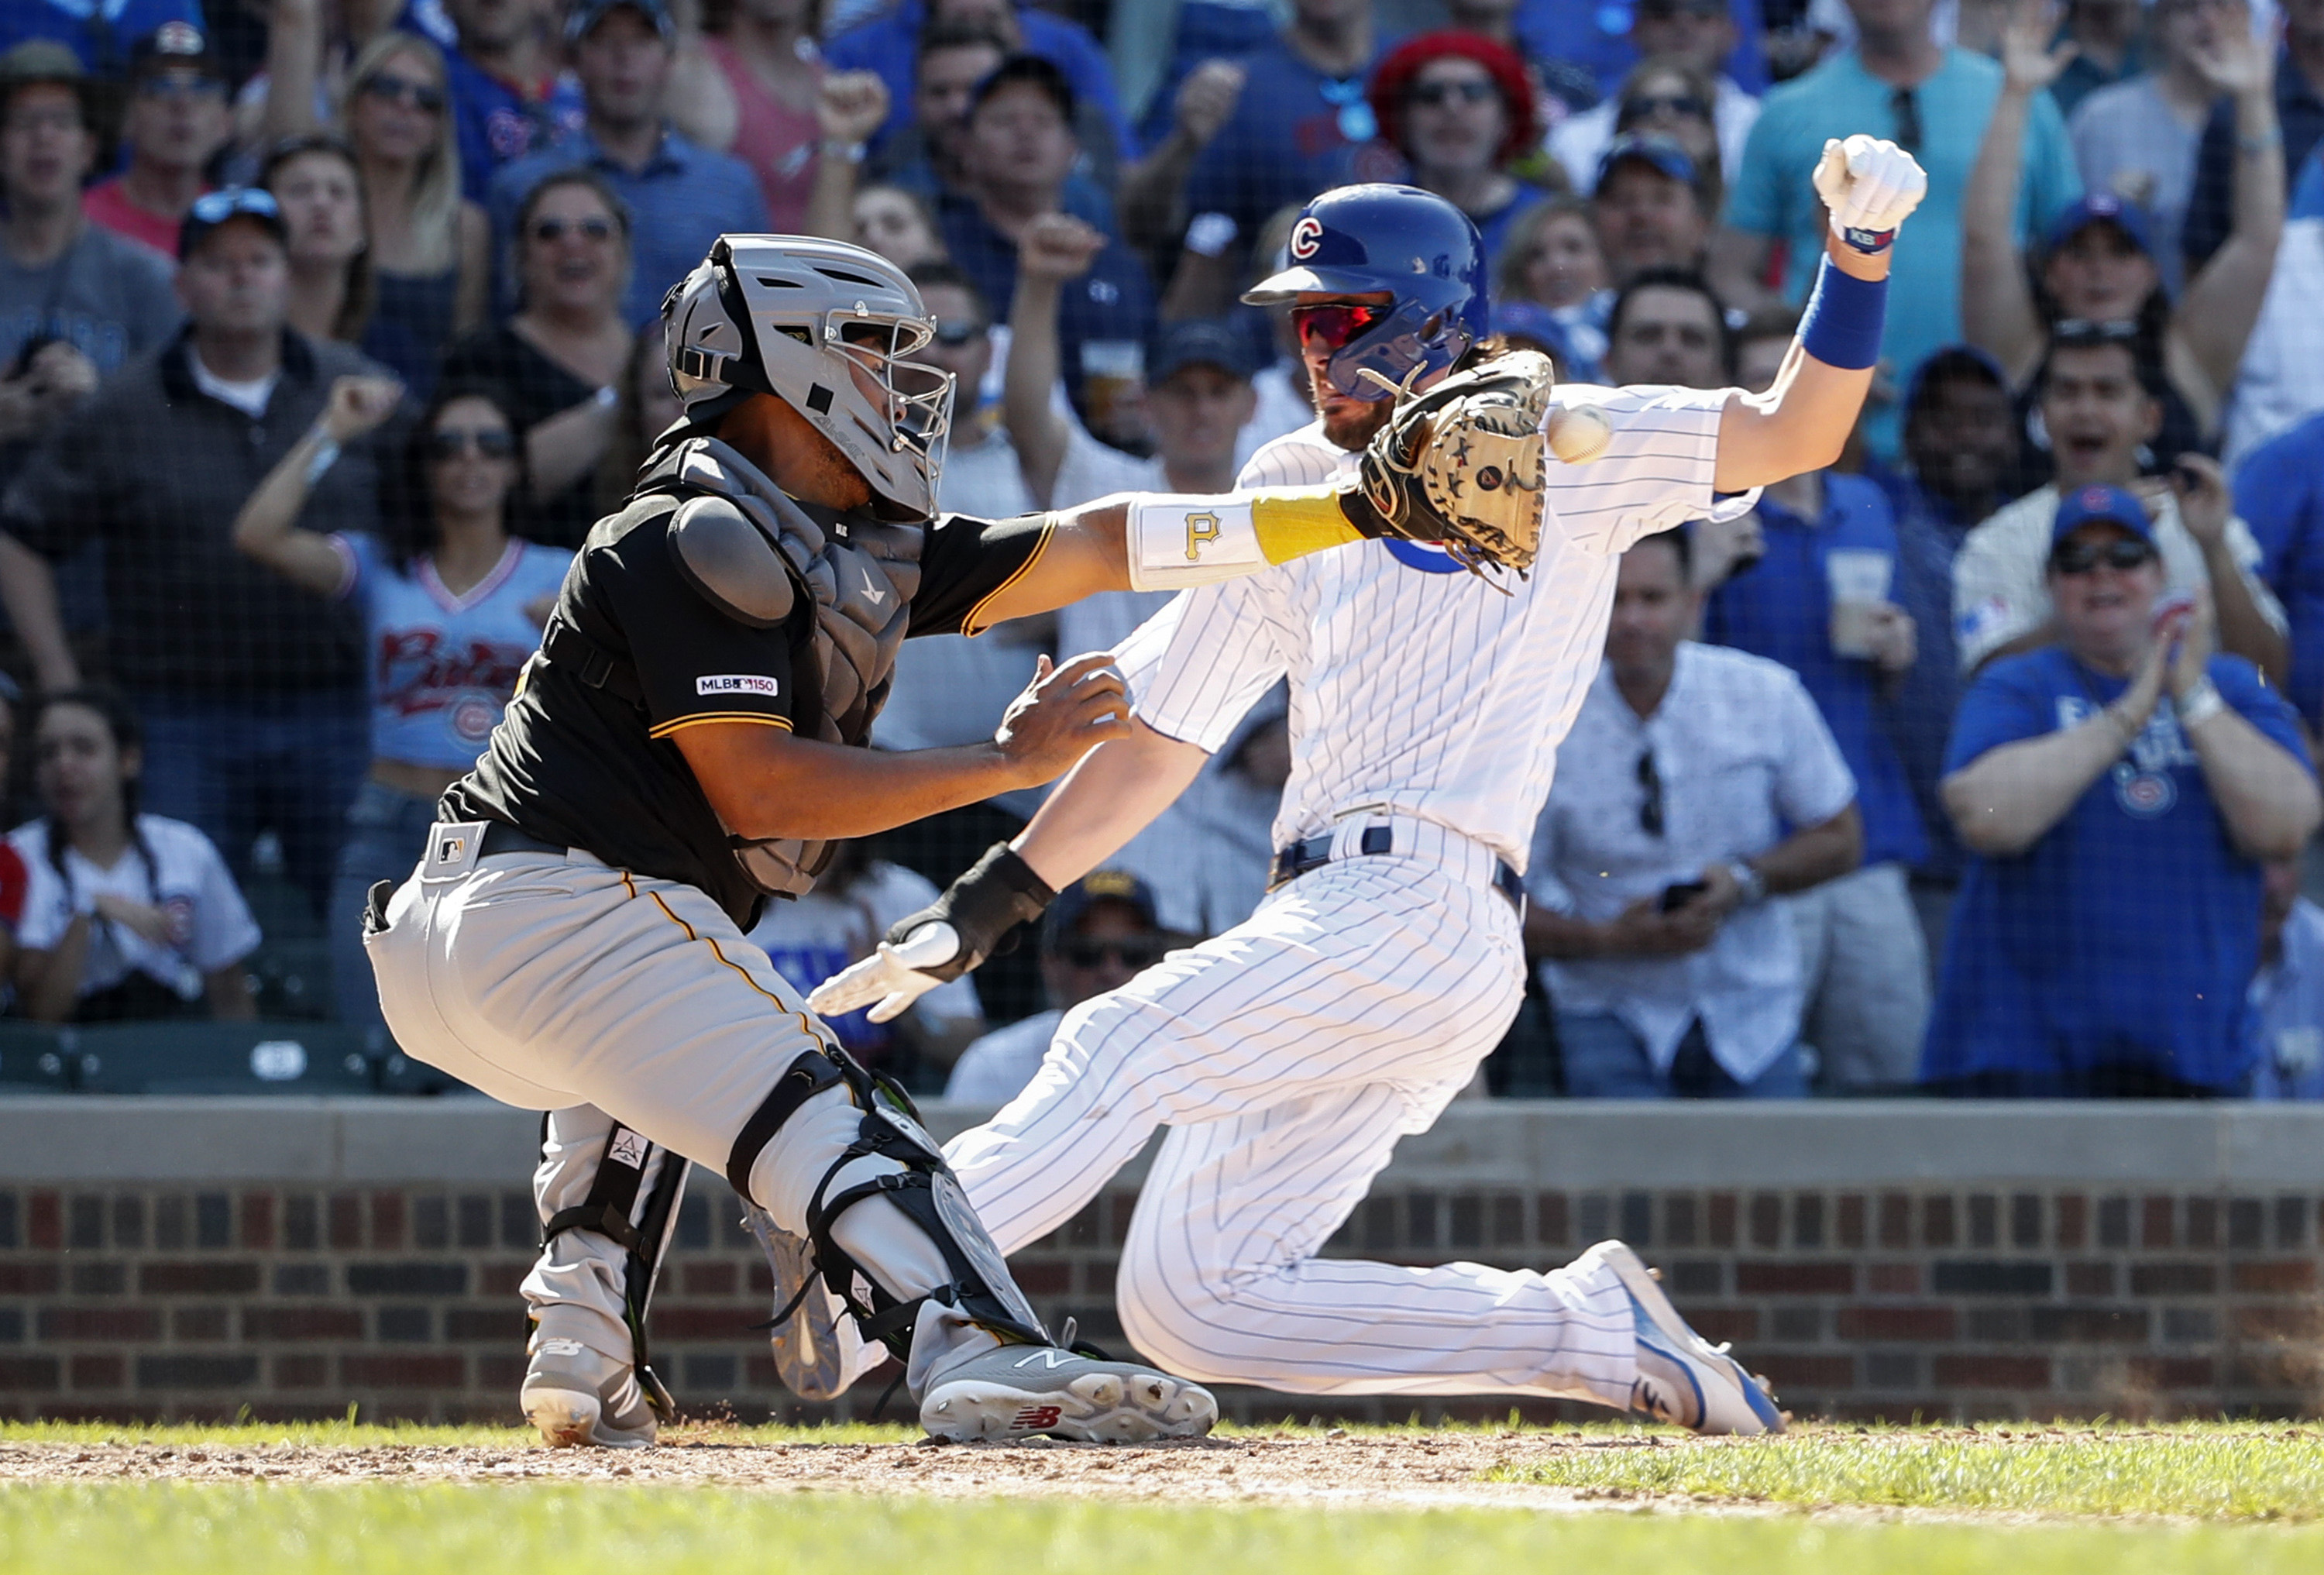 Cubs edge Pirates 4-3 on Heyward's hit, Bryant's baserunning